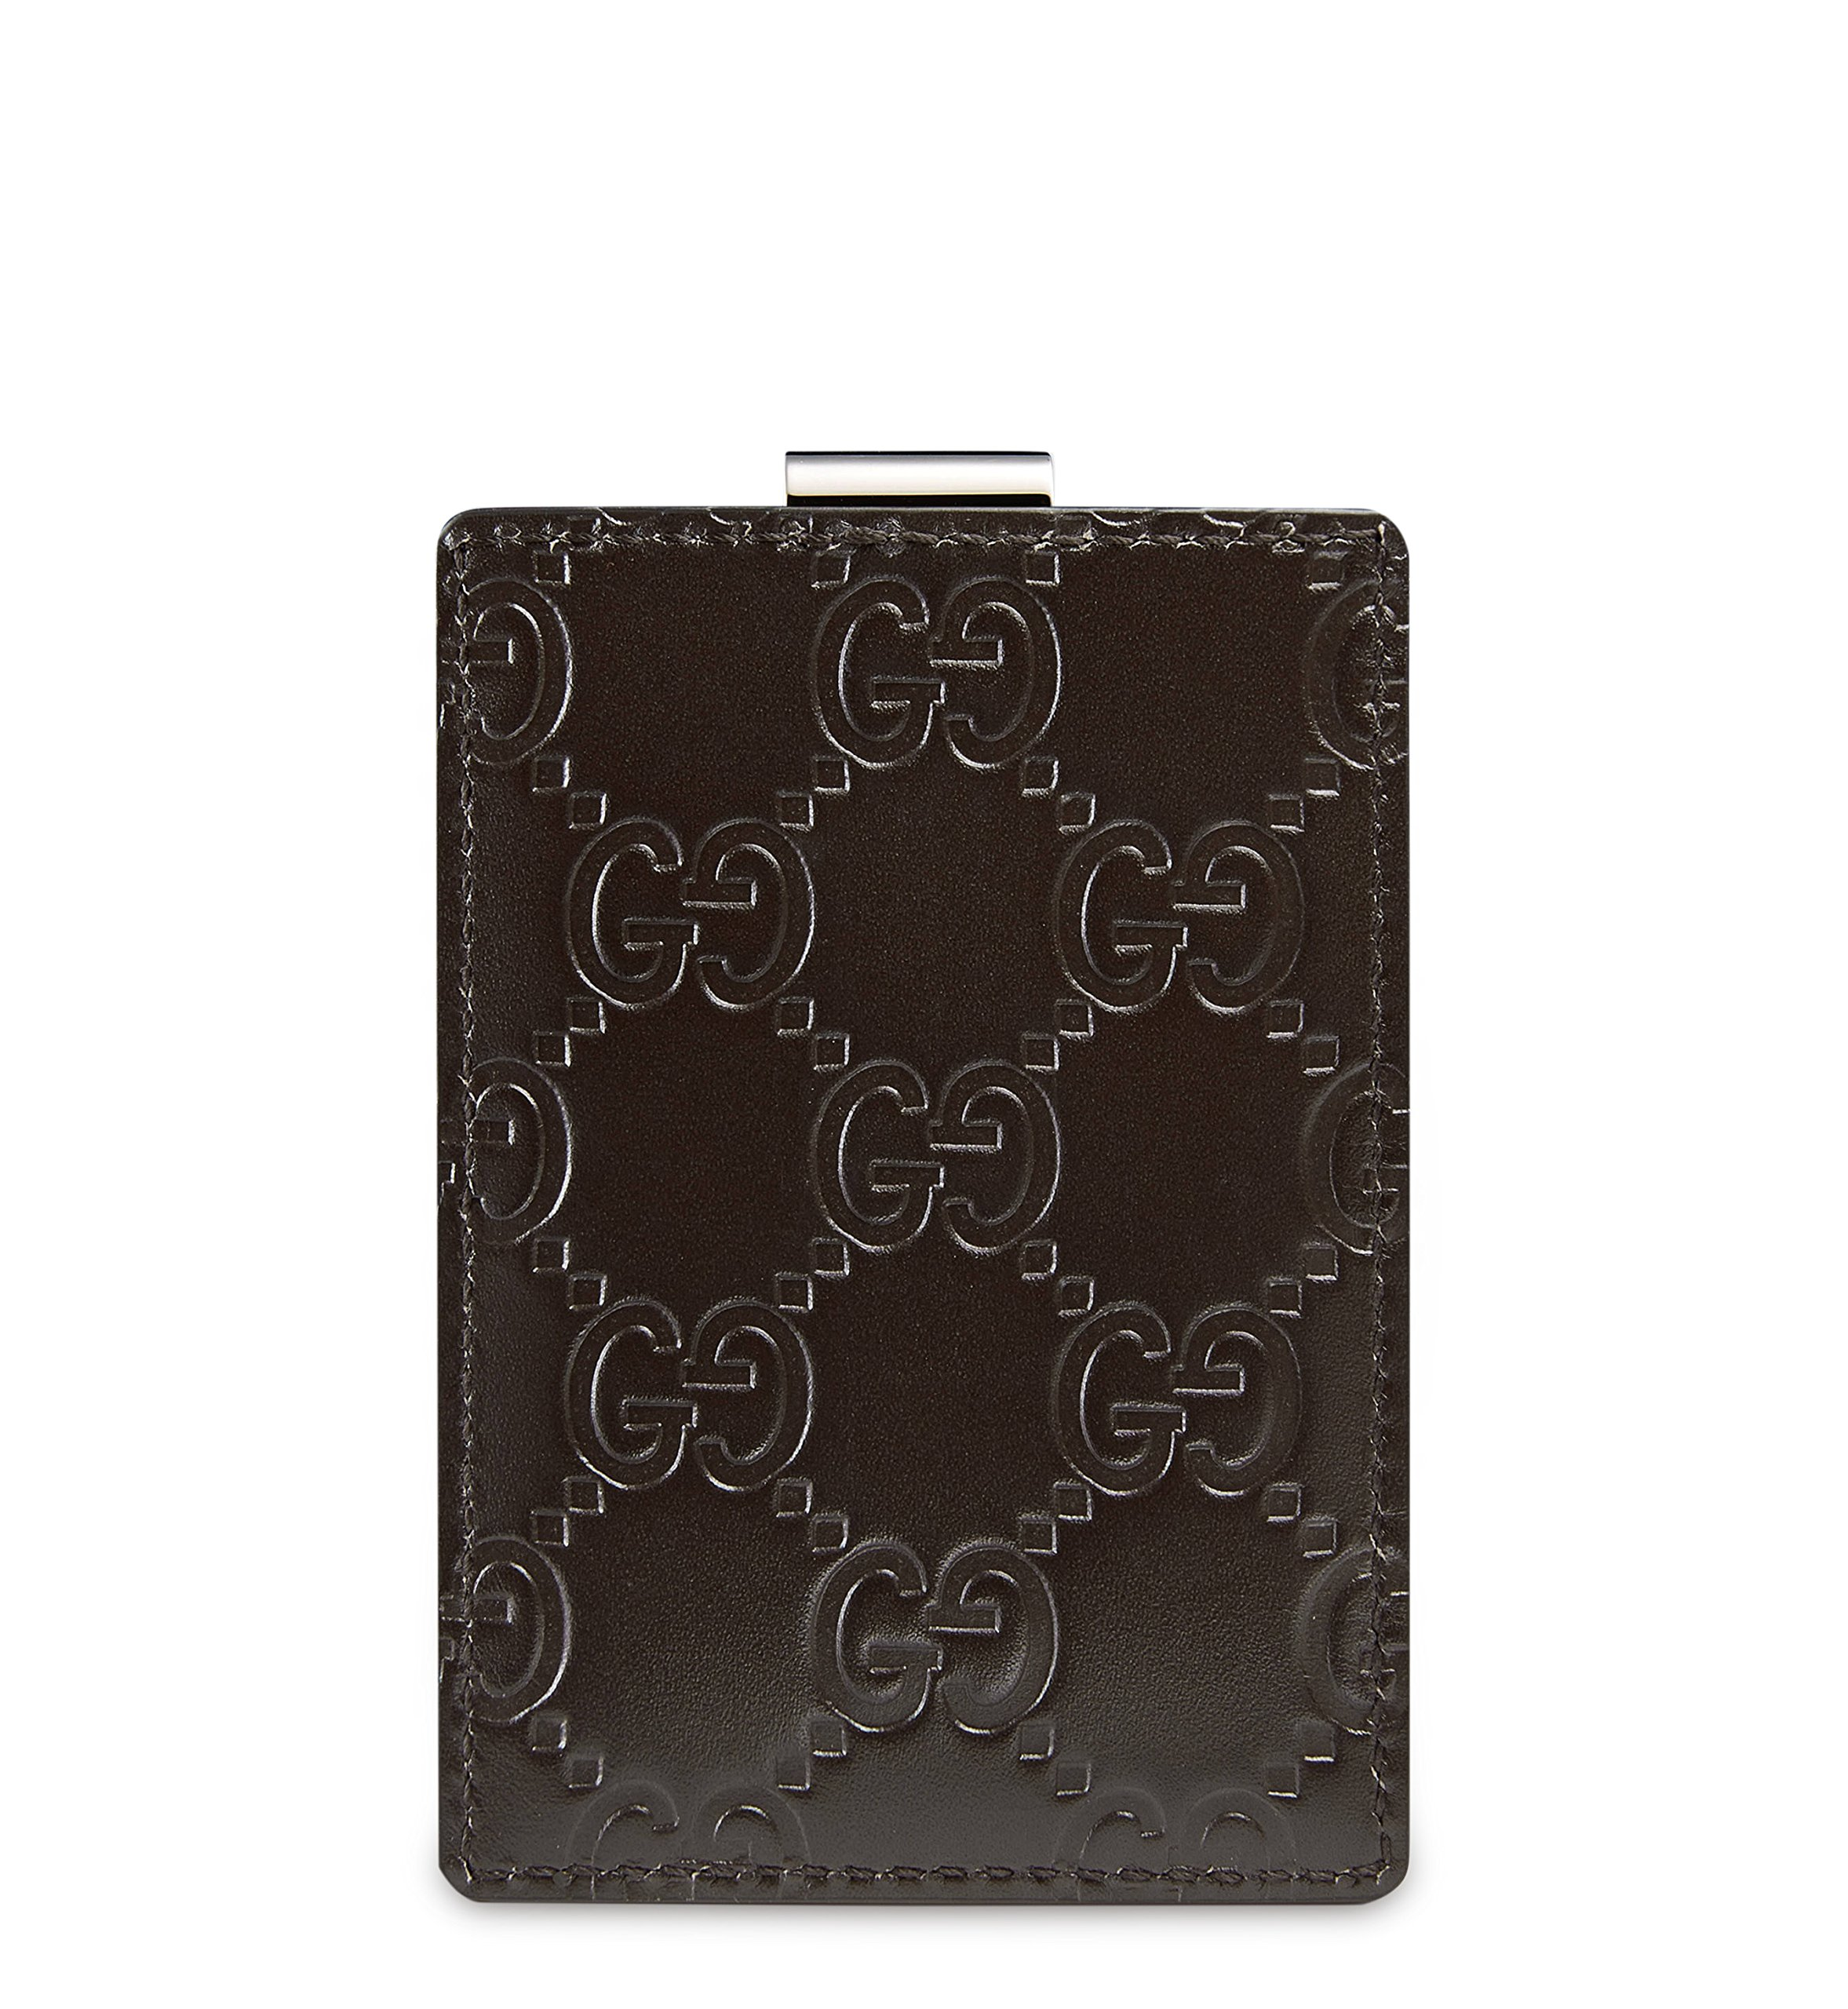 Gucci Signature Guccissima Leather Money Clip, Brown 115268